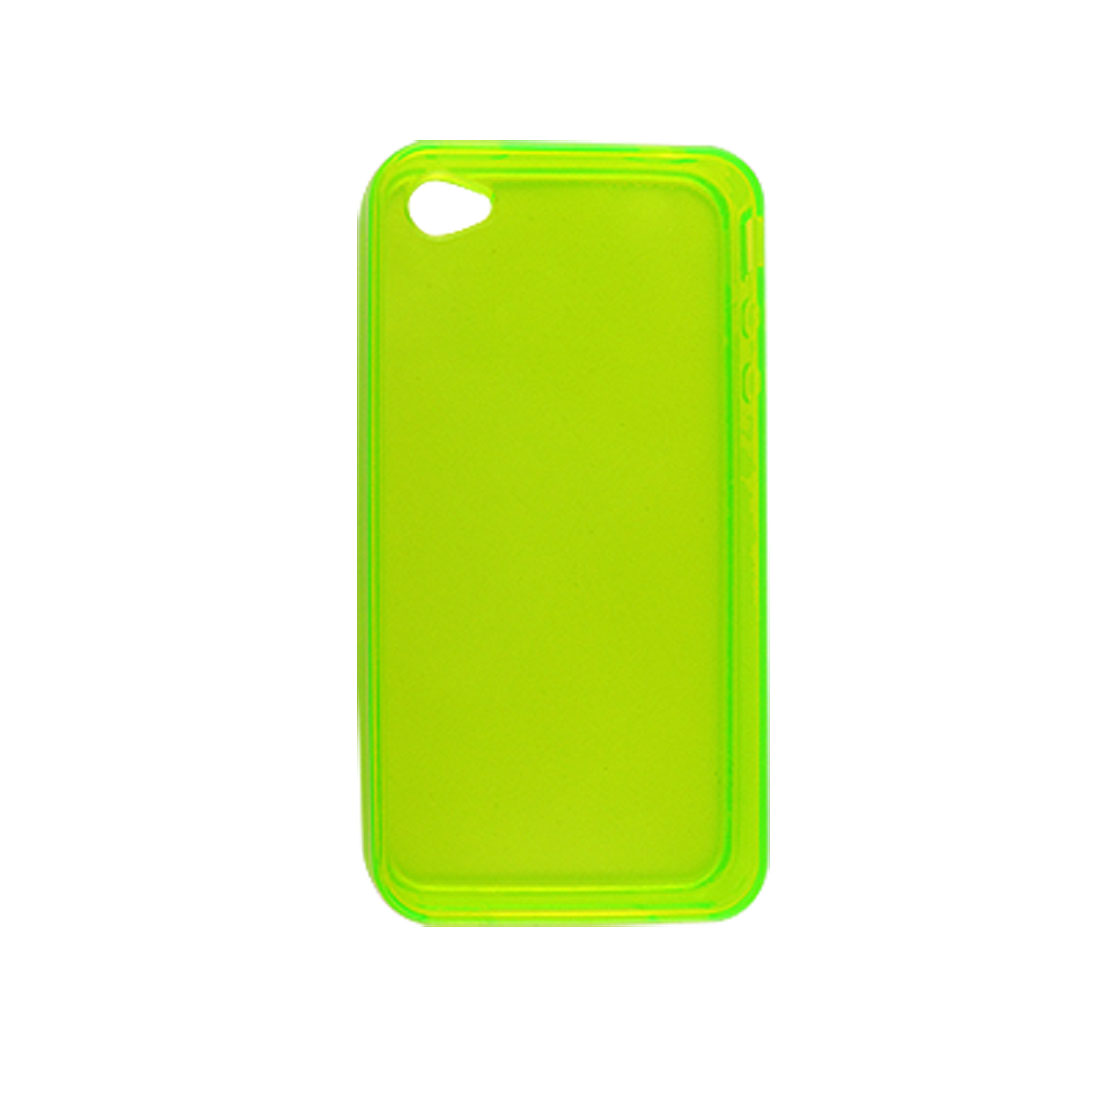 Clear Green Soft Skin Plastic Back Case Shell for iPhone 4 4G